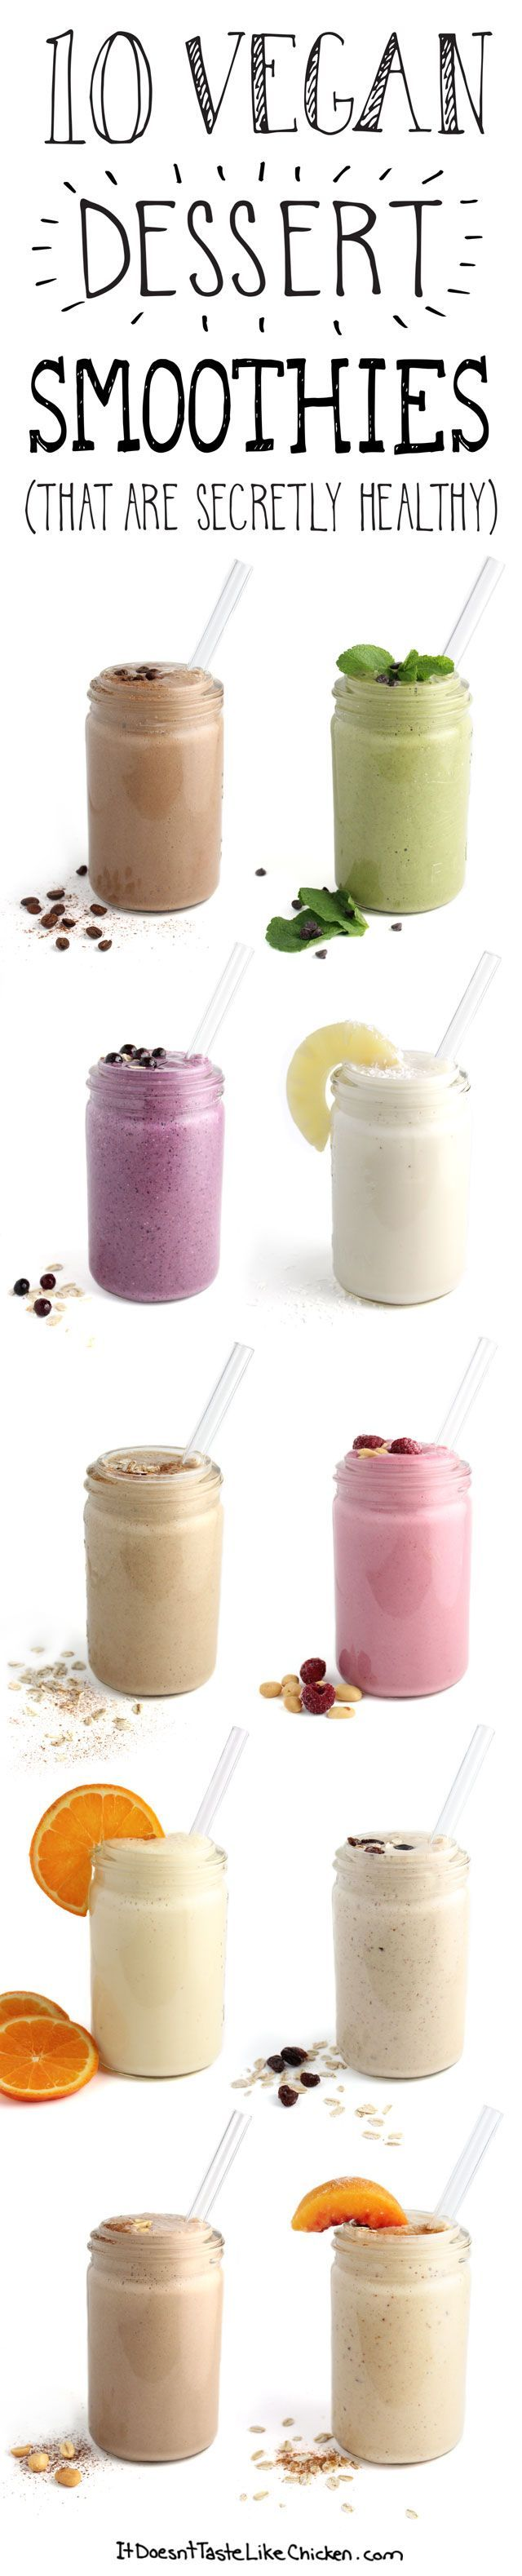 10 Vegan Dessert Smoothies (that are secretly healthy)! #healthy #vegan #smoothies